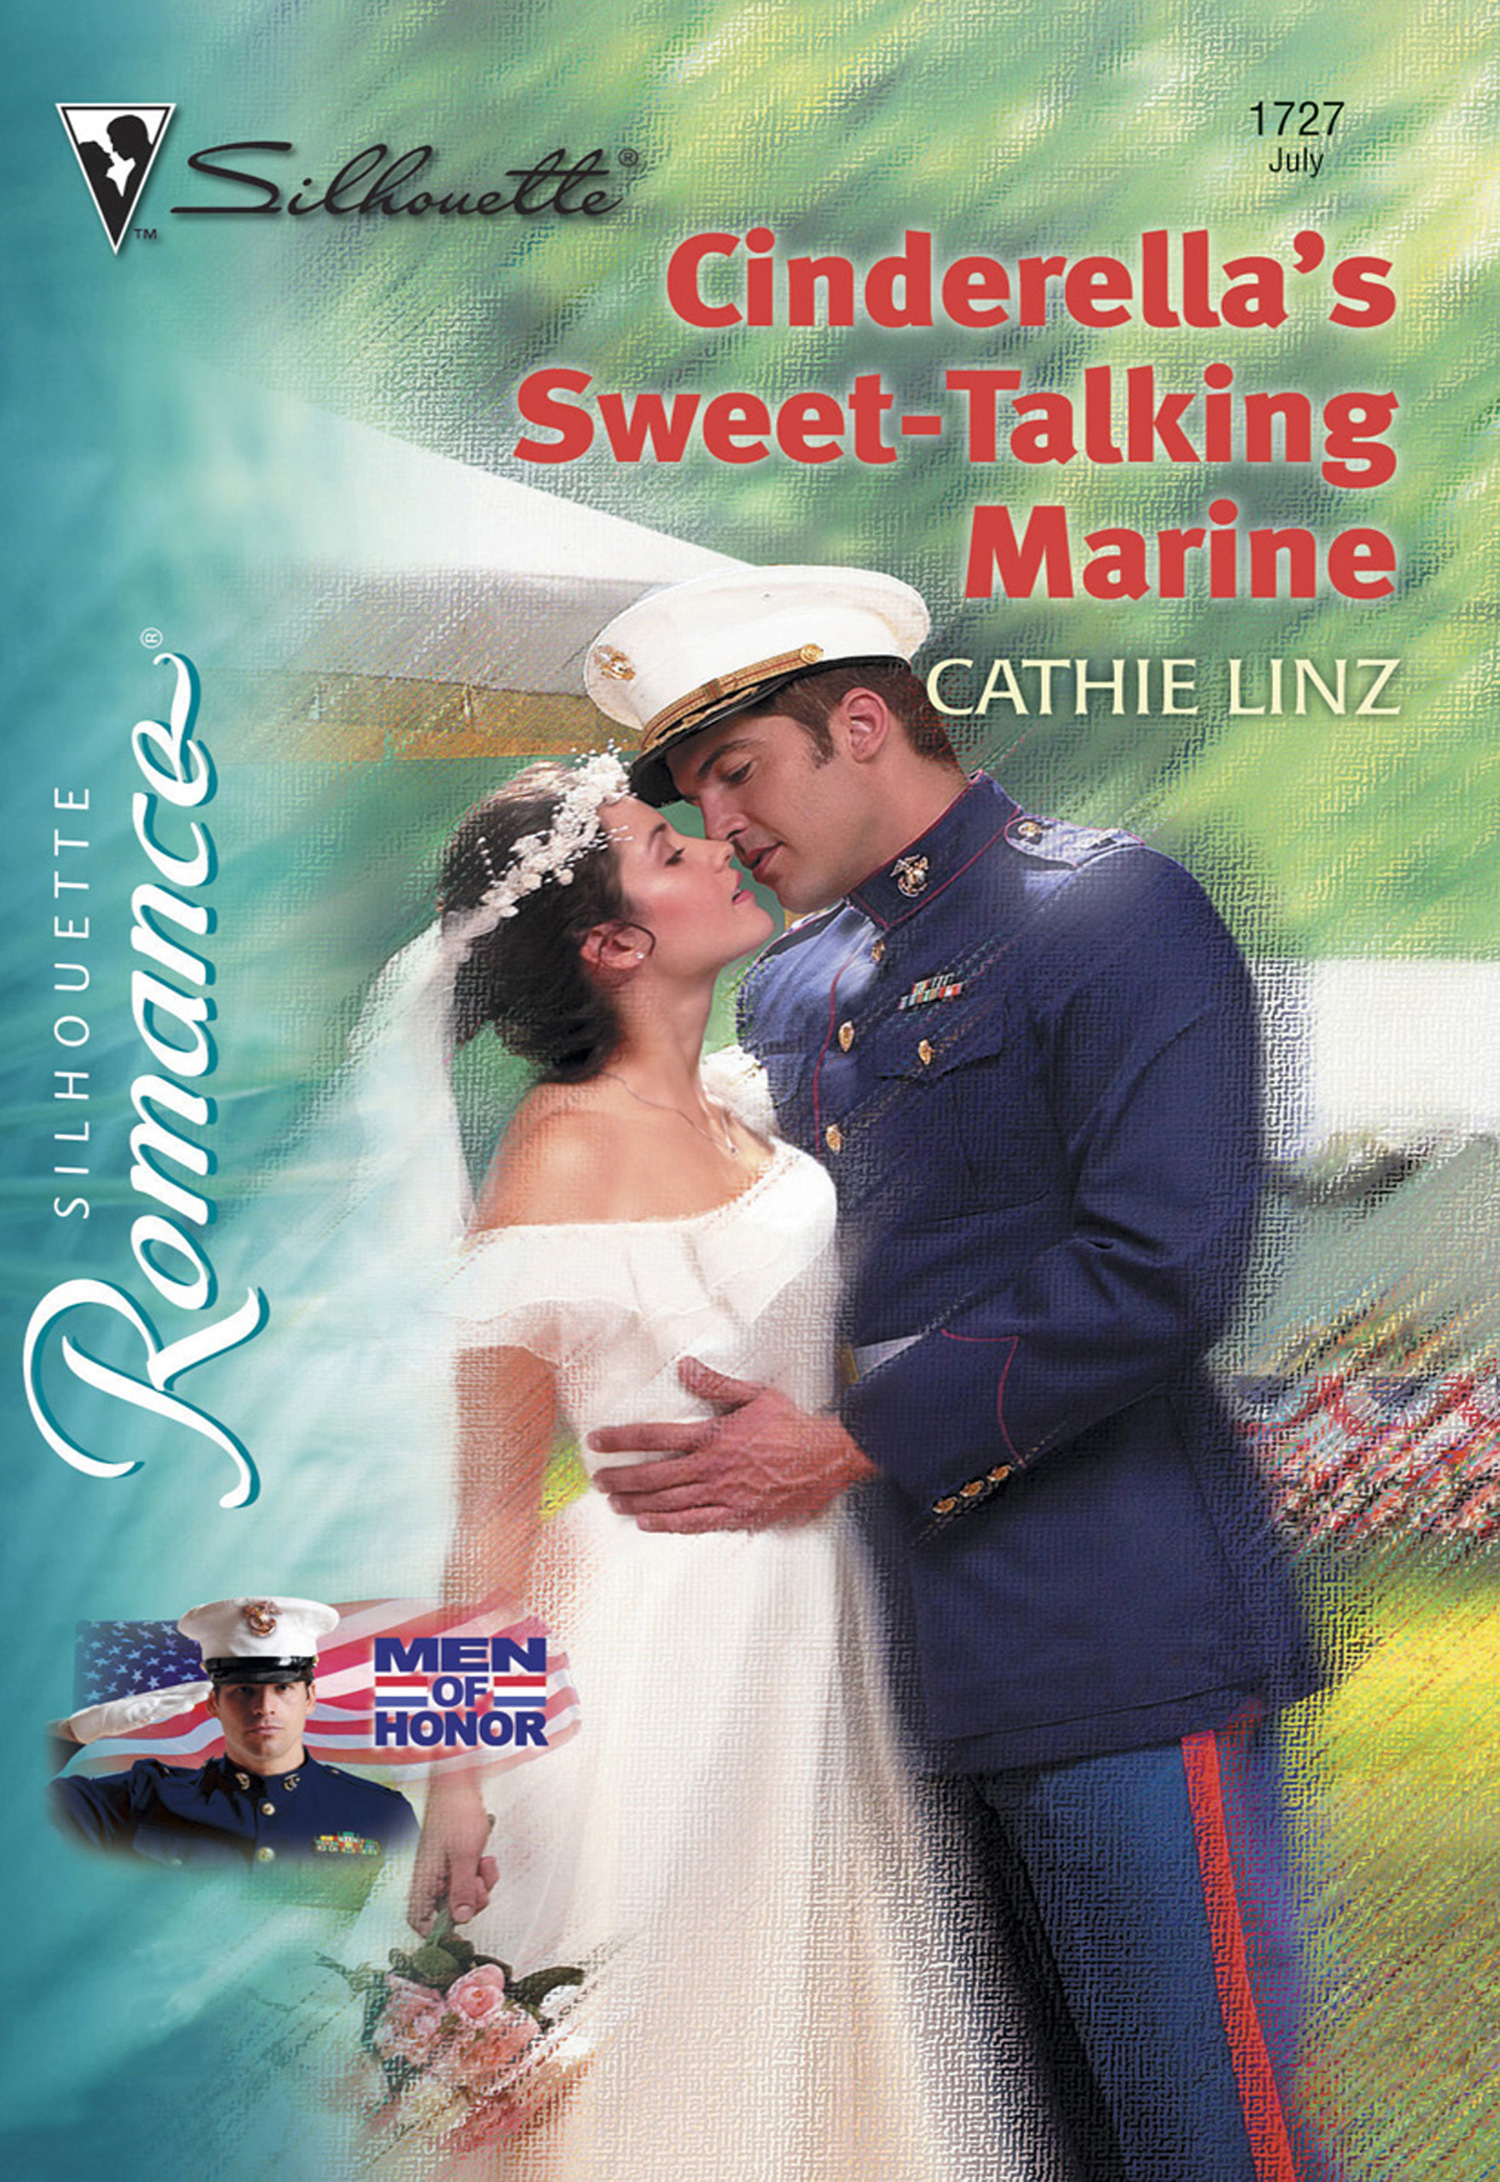 Cinderella's Sweet-Talking Marine